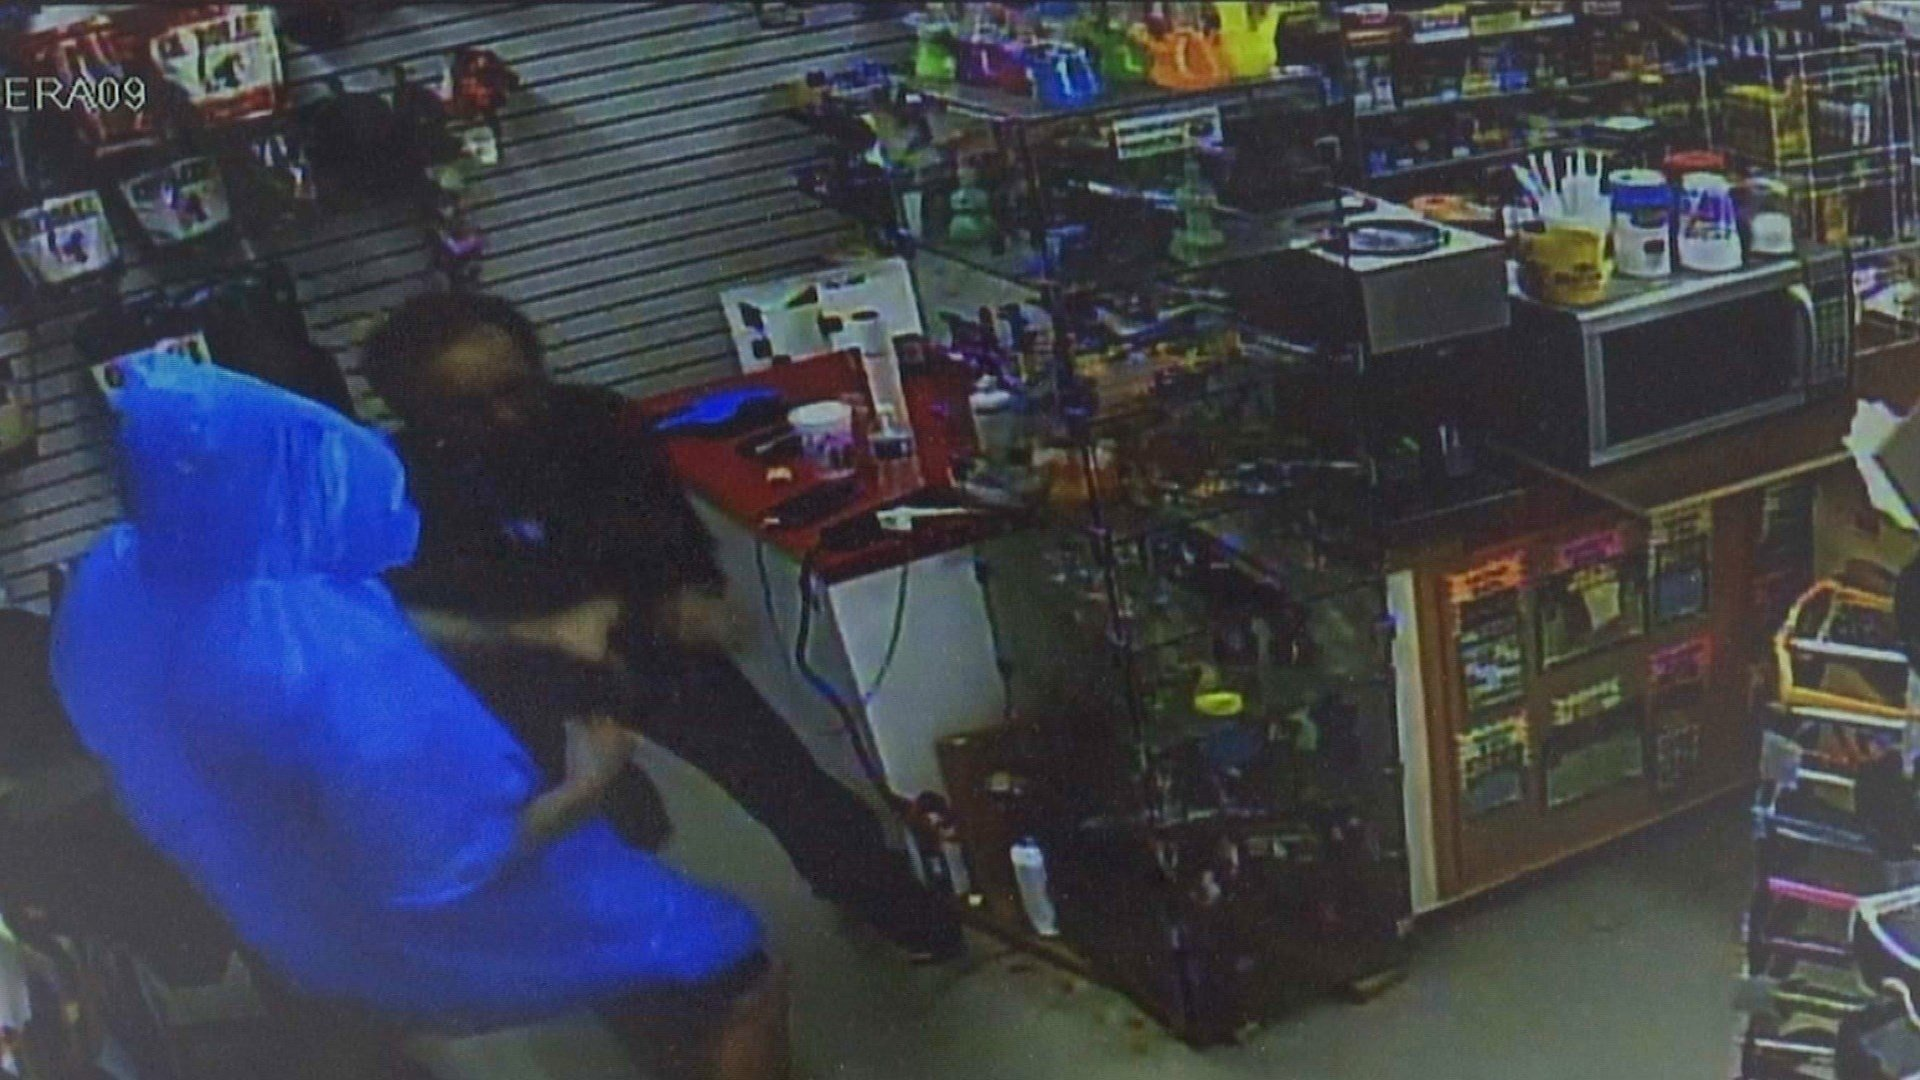 Clerk wrestles with attacker armed with gasoline